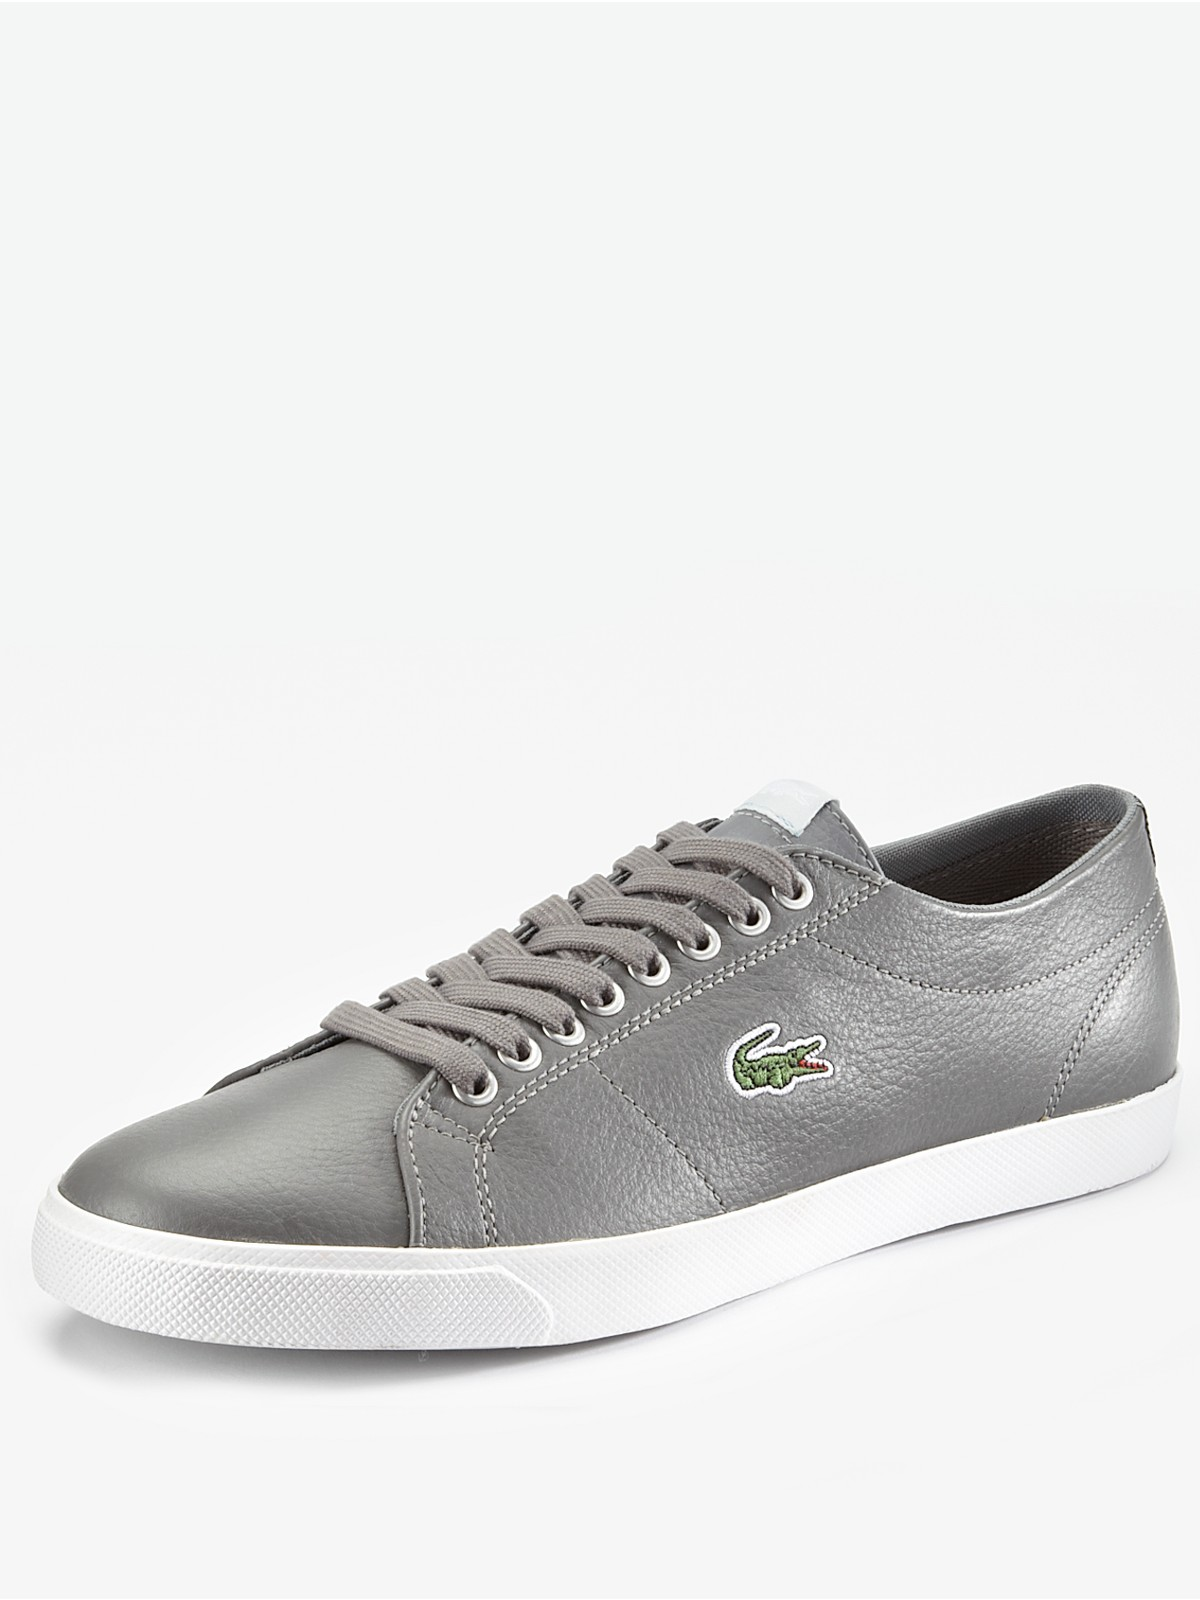 Find great deals on eBay for mens plimsolls. Shop with confidence.